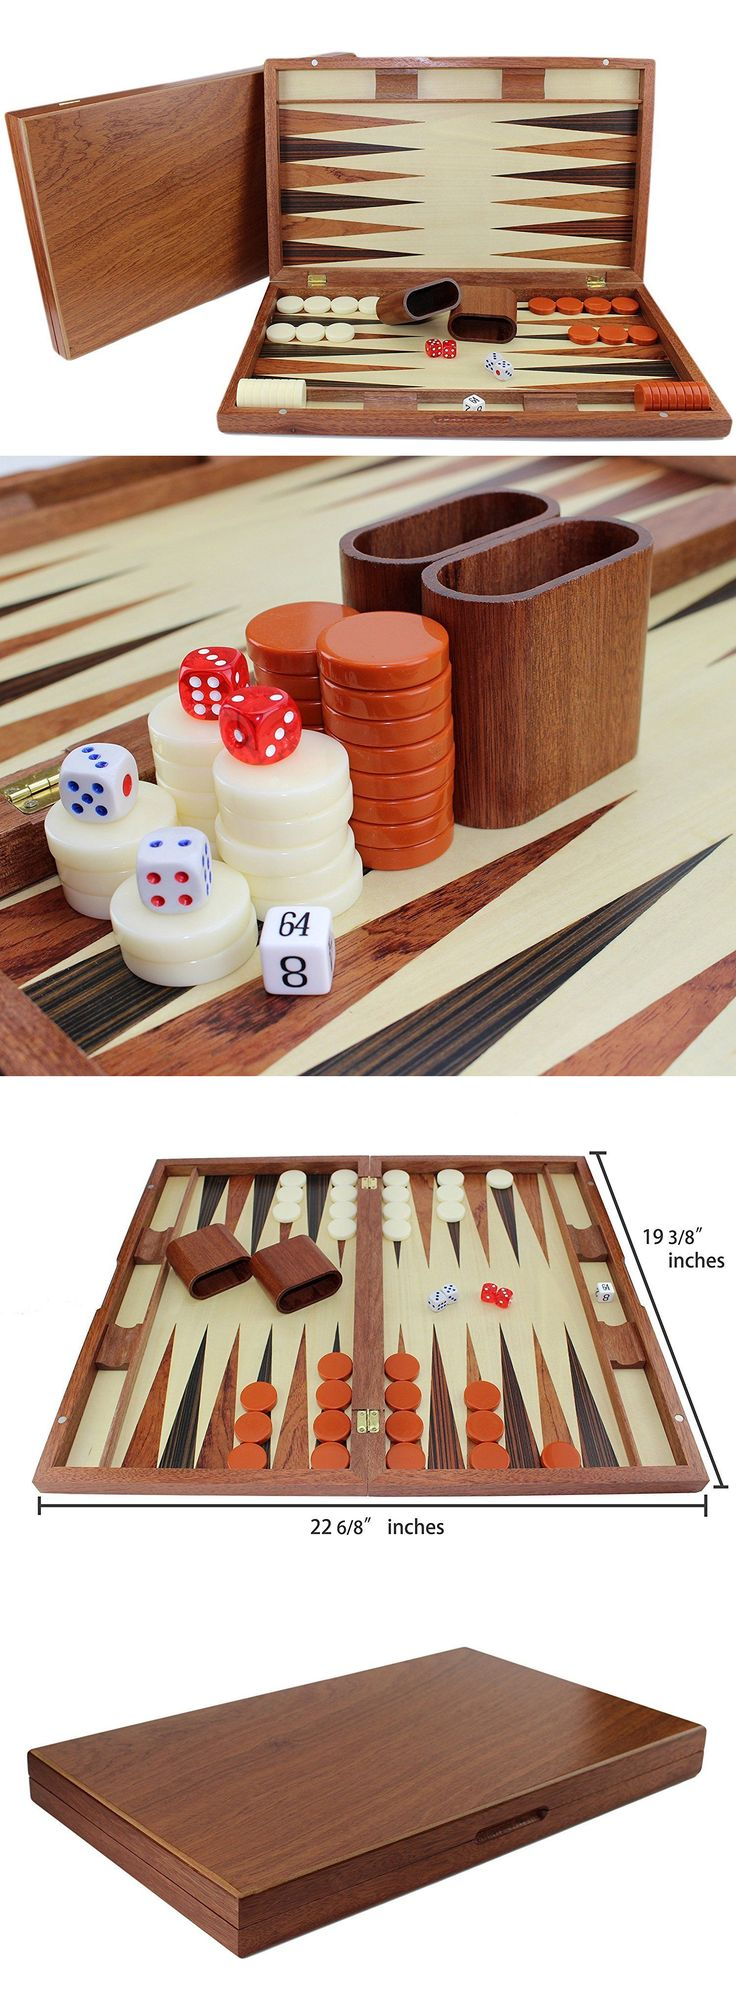 Contemporary chess 40856 19 large classic board game backgammon set brown wooden portable us seller